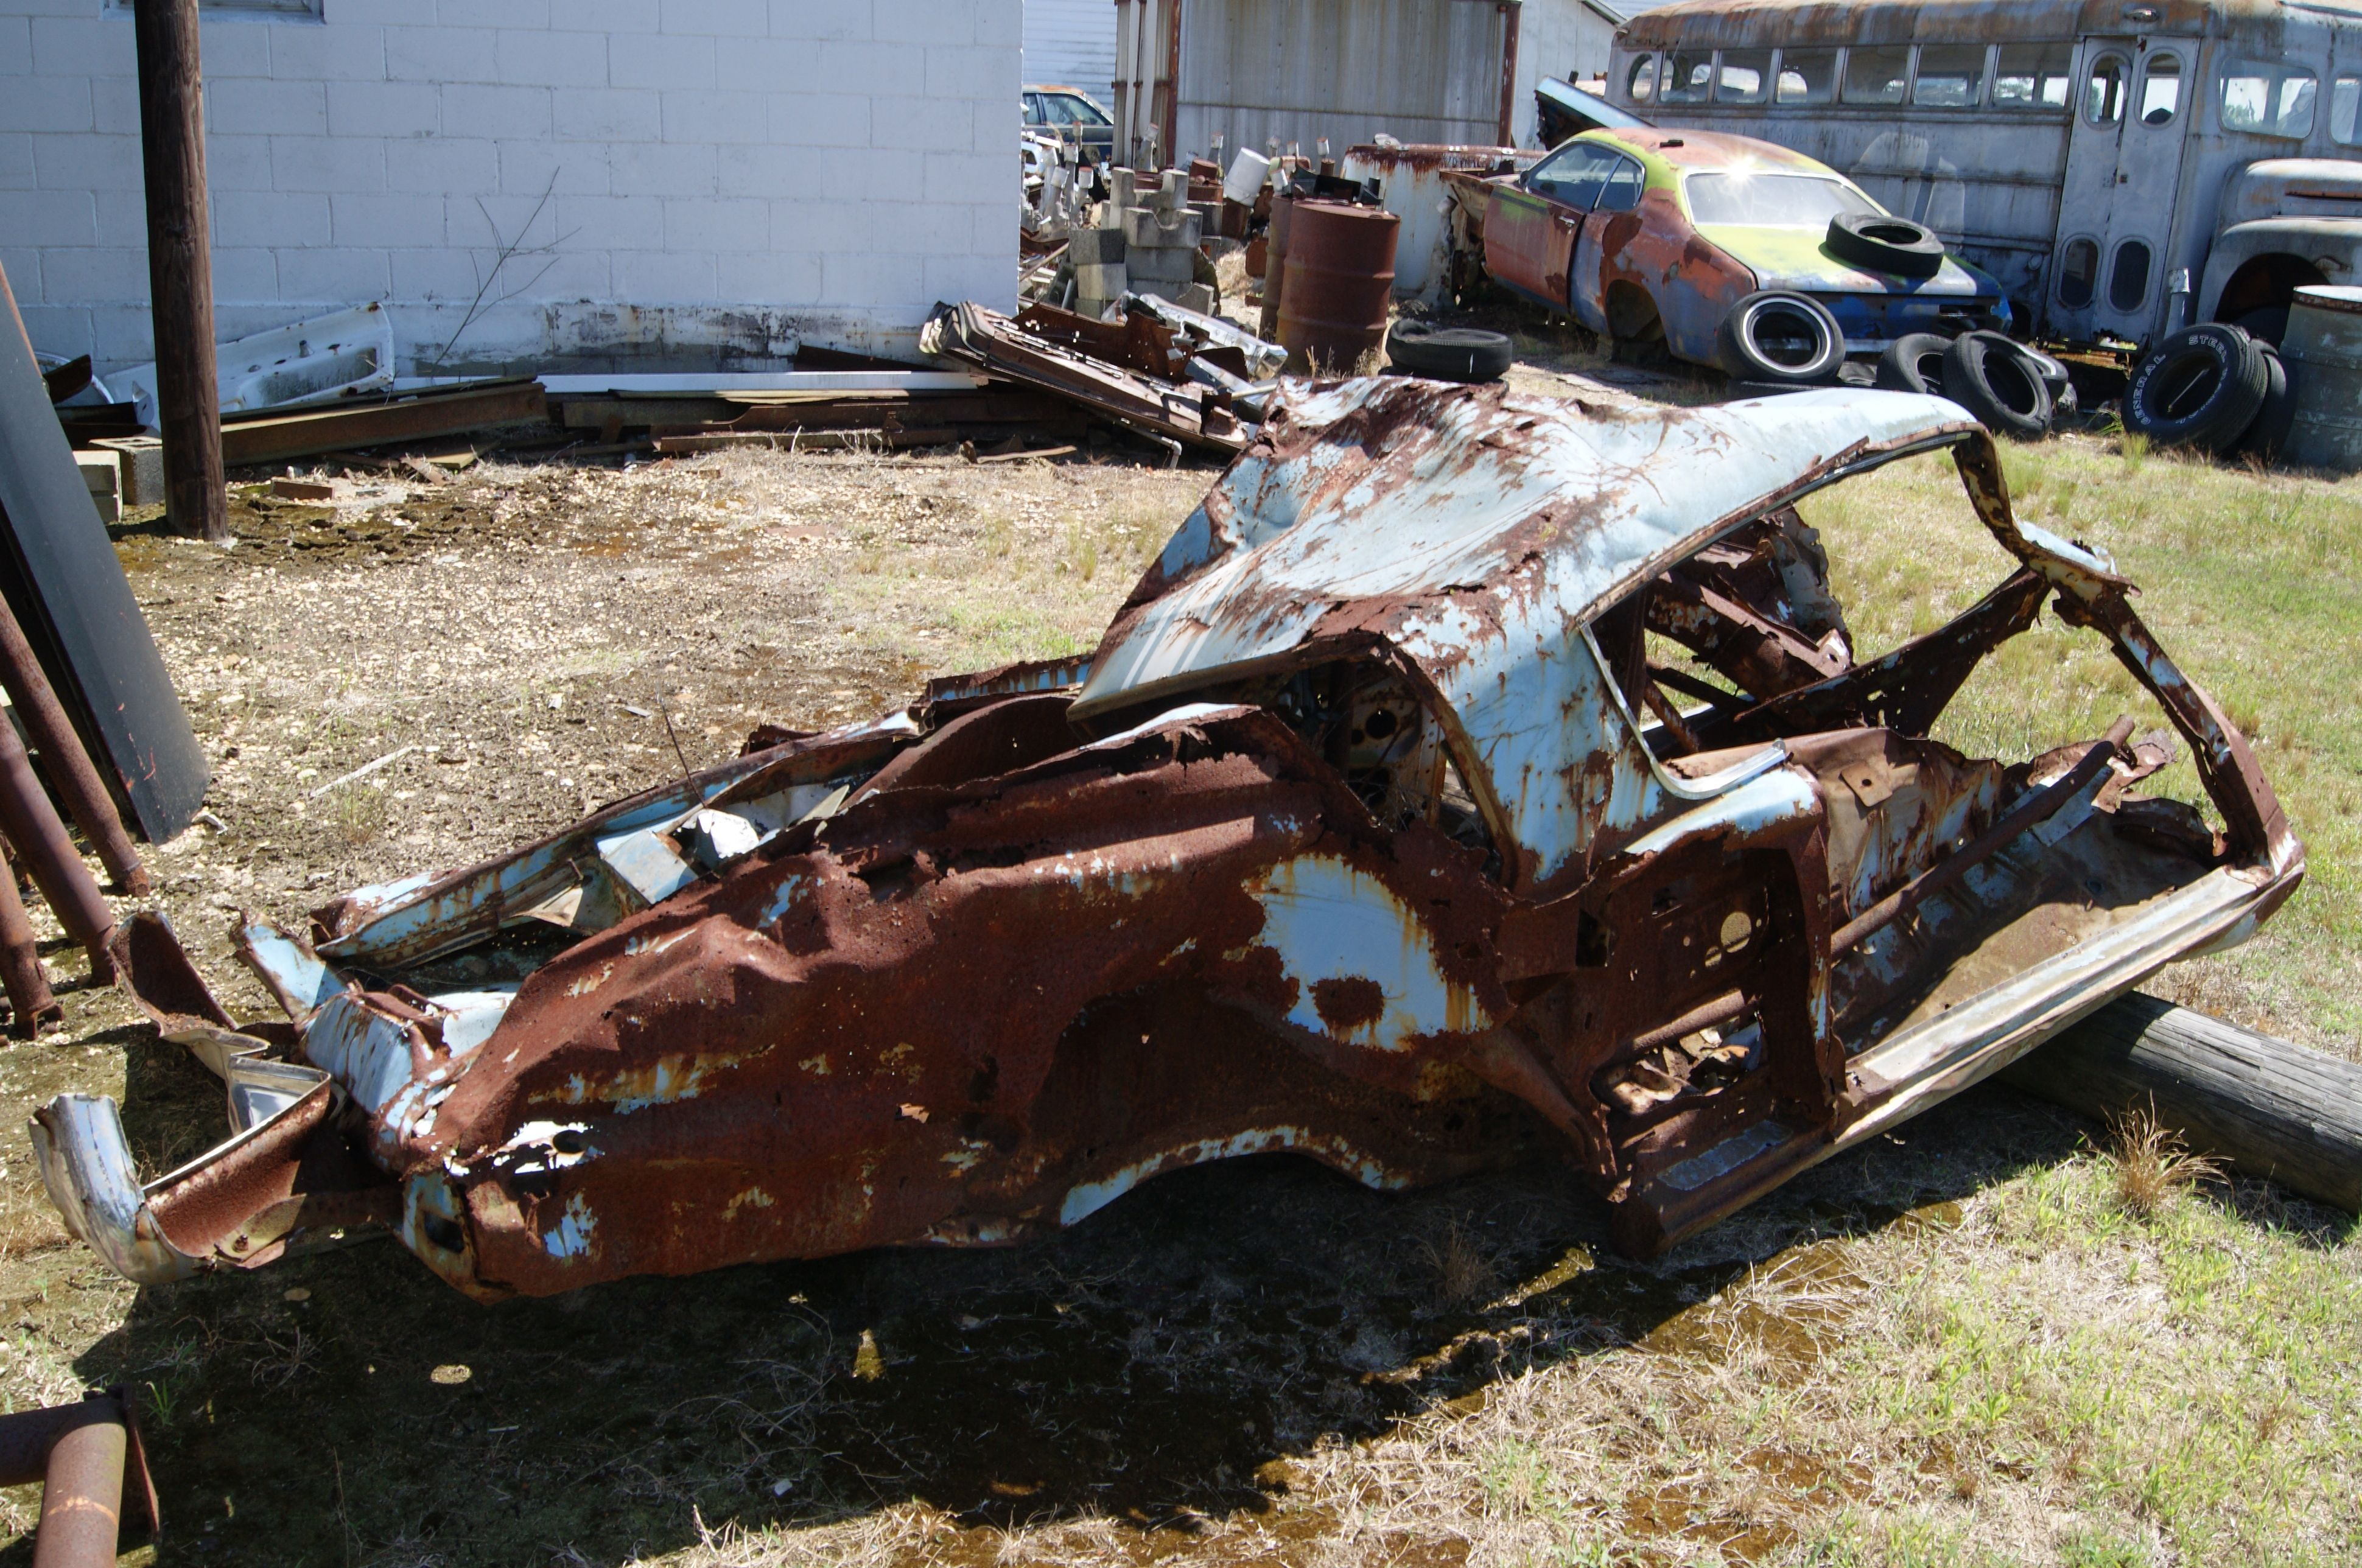 Plus Check Out This Guy Who Found Two Beauties In An Abandoned Semi Trailer A 1985 Camaro Z28 And 1970 Road Runner Amazing